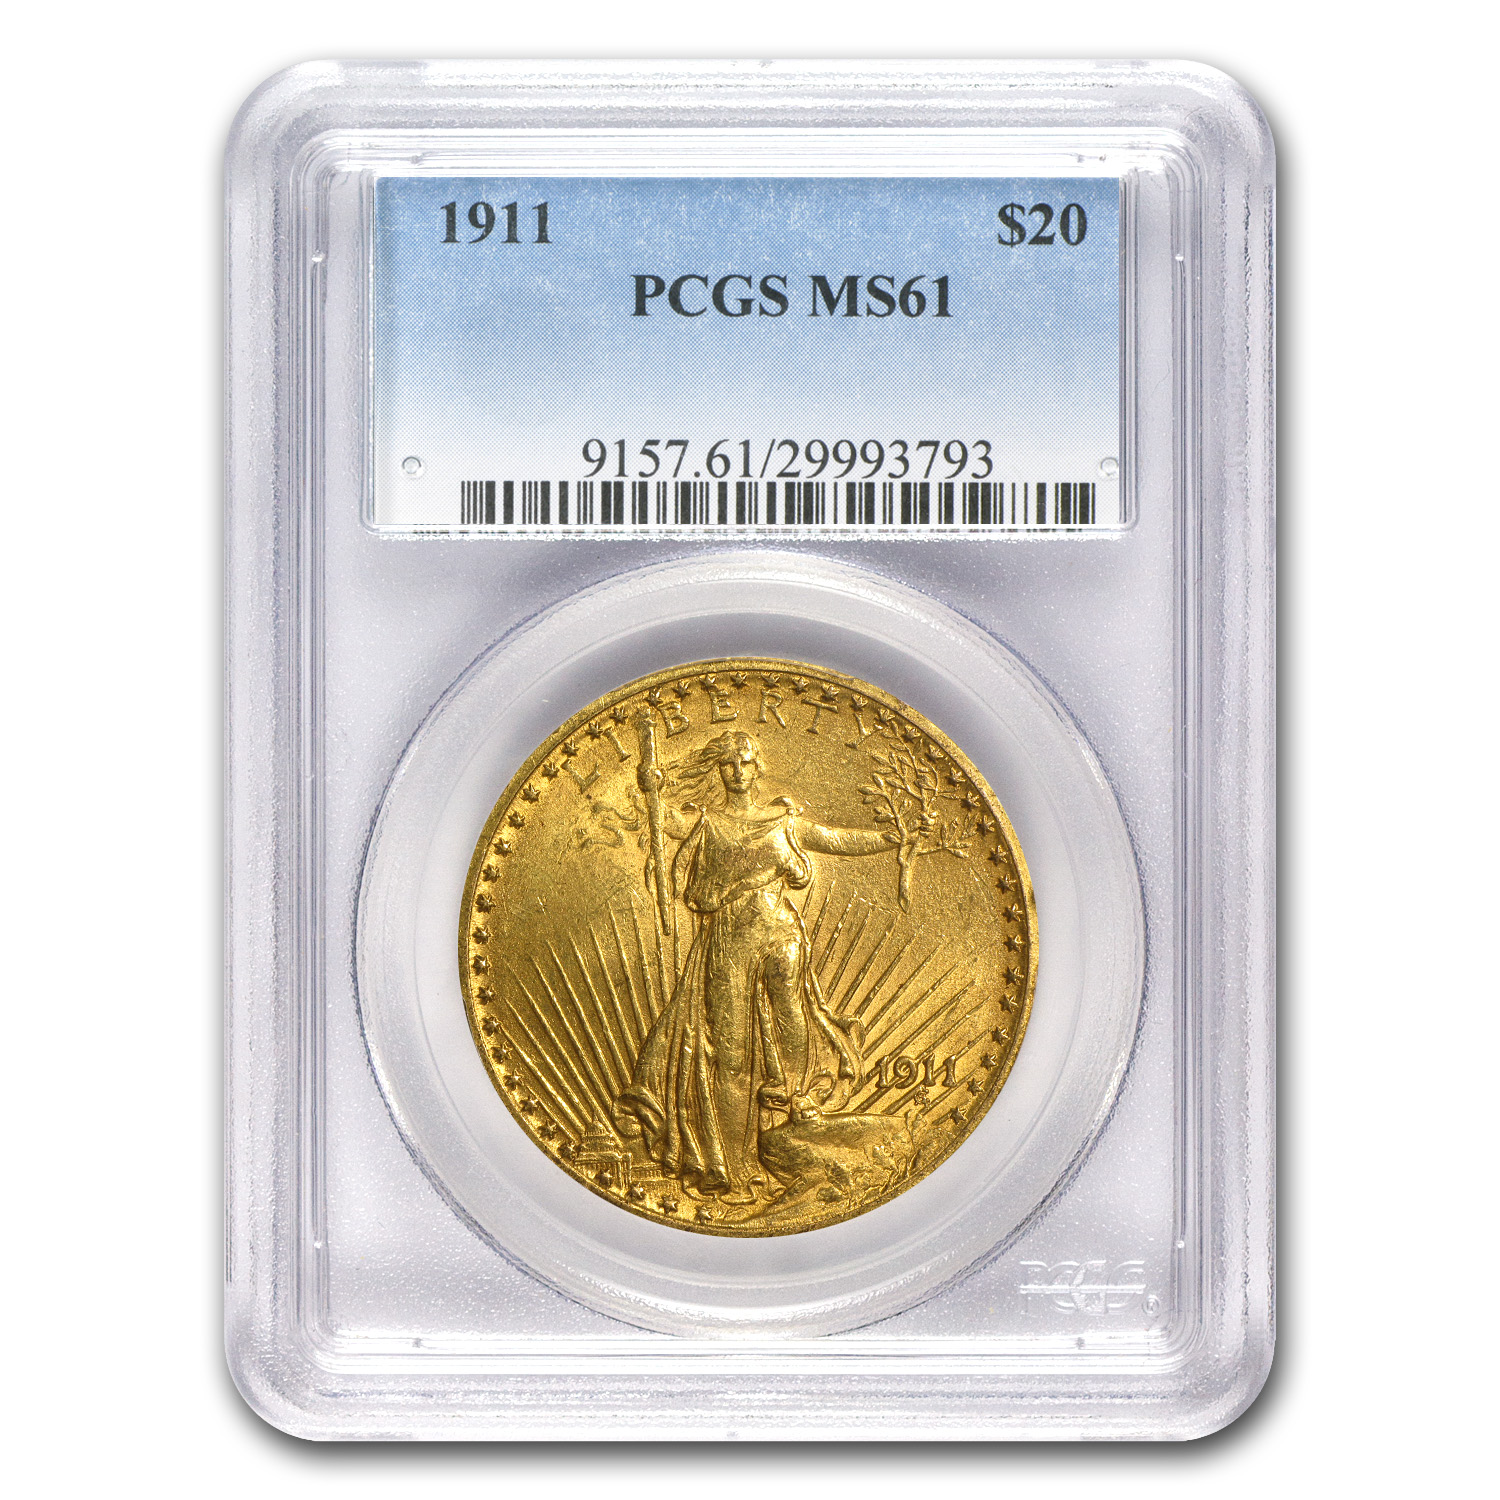 1911 $20 St. Gaudens Gold Double Eagle - MS-61 PCGS